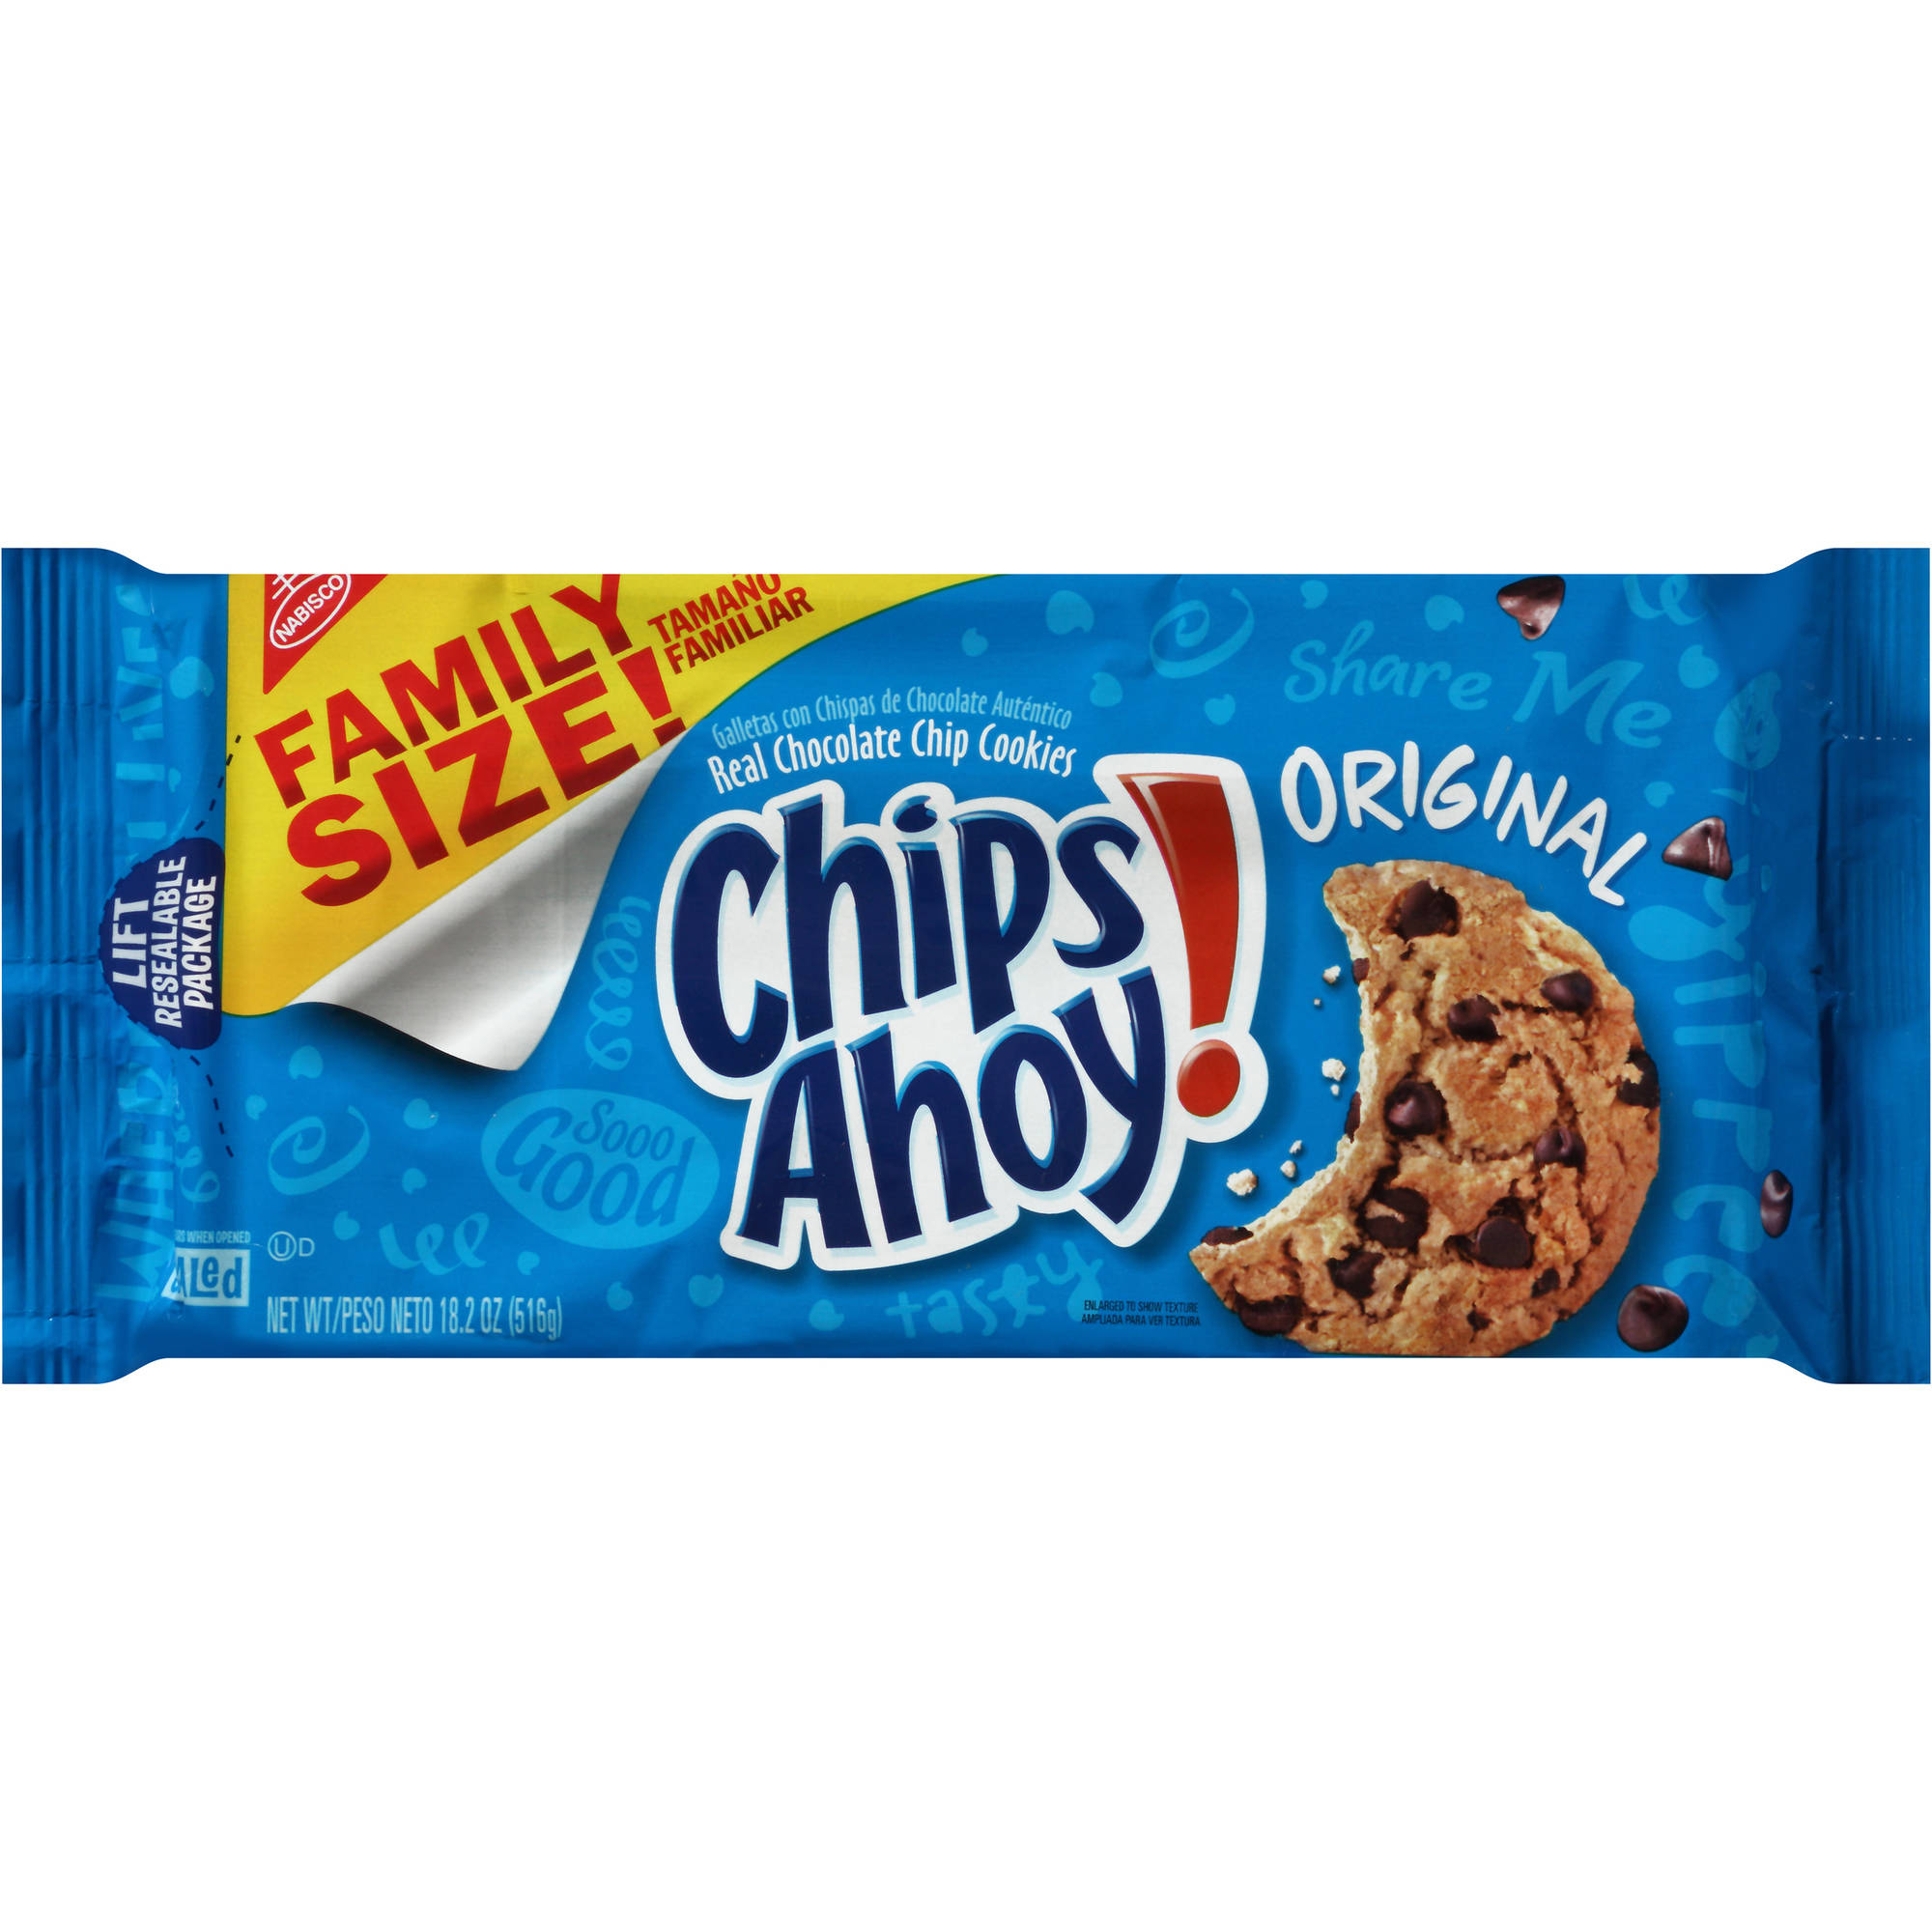 Nabisco Chips Ahoy! Original Chocolate Chip Cookies, 18.2 oz